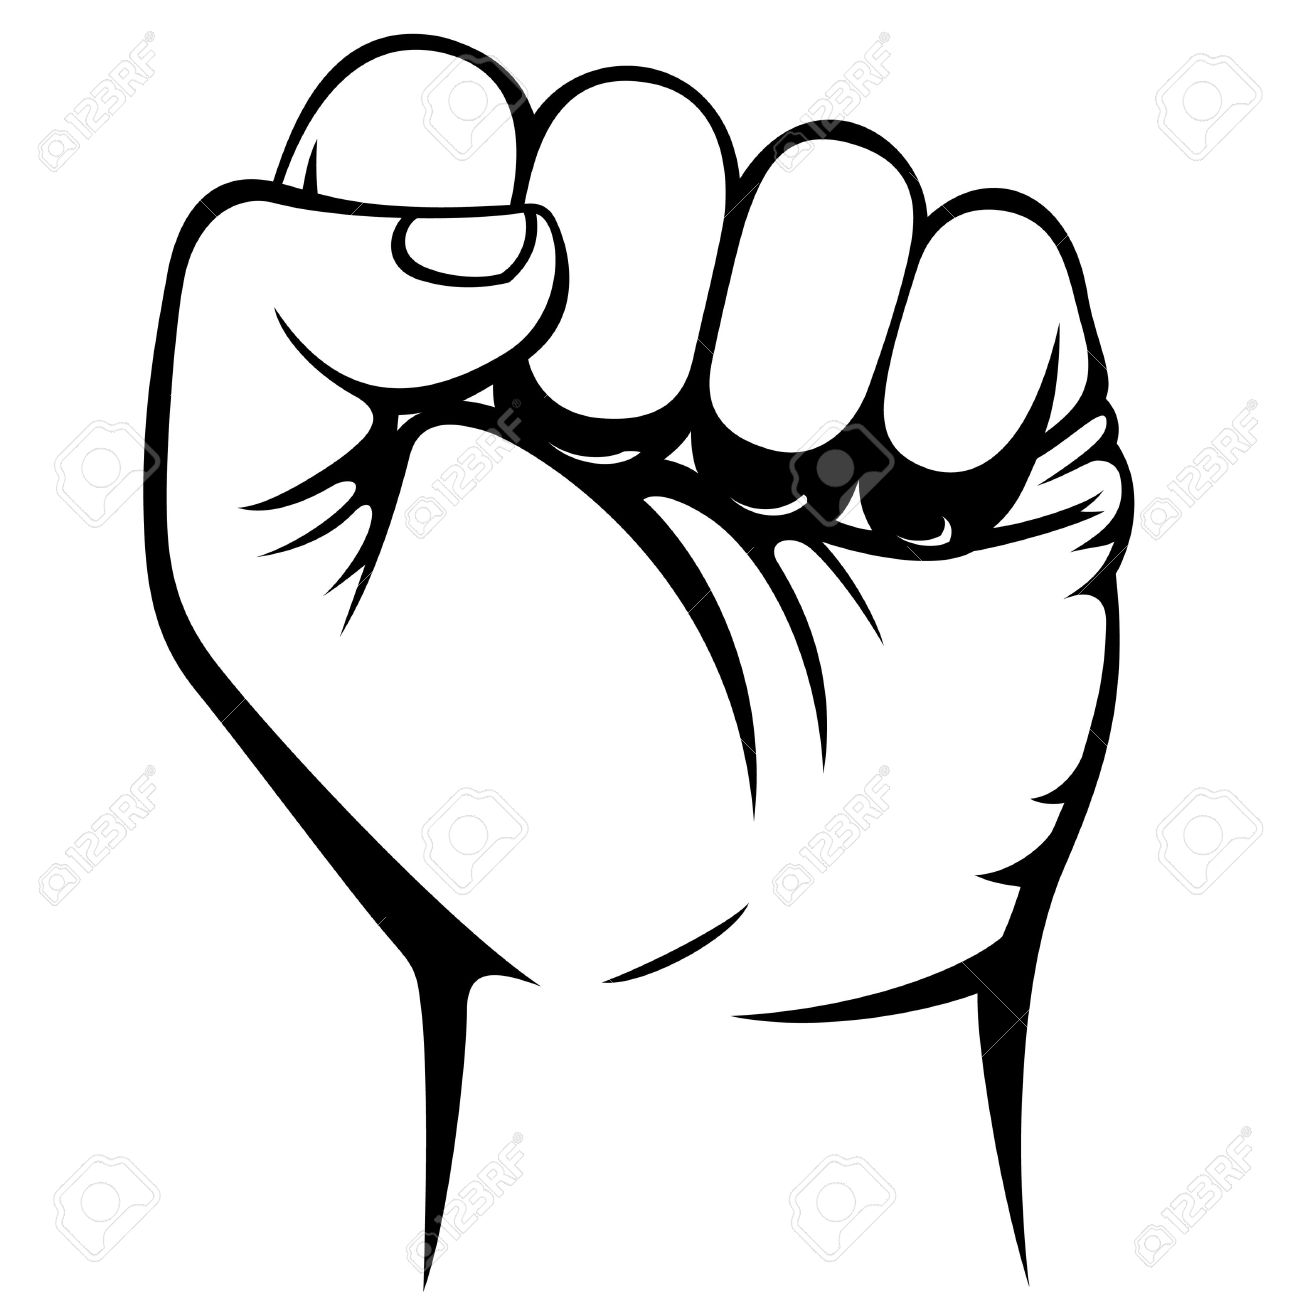 1300x1300 Fist Clipart Clenched Fist